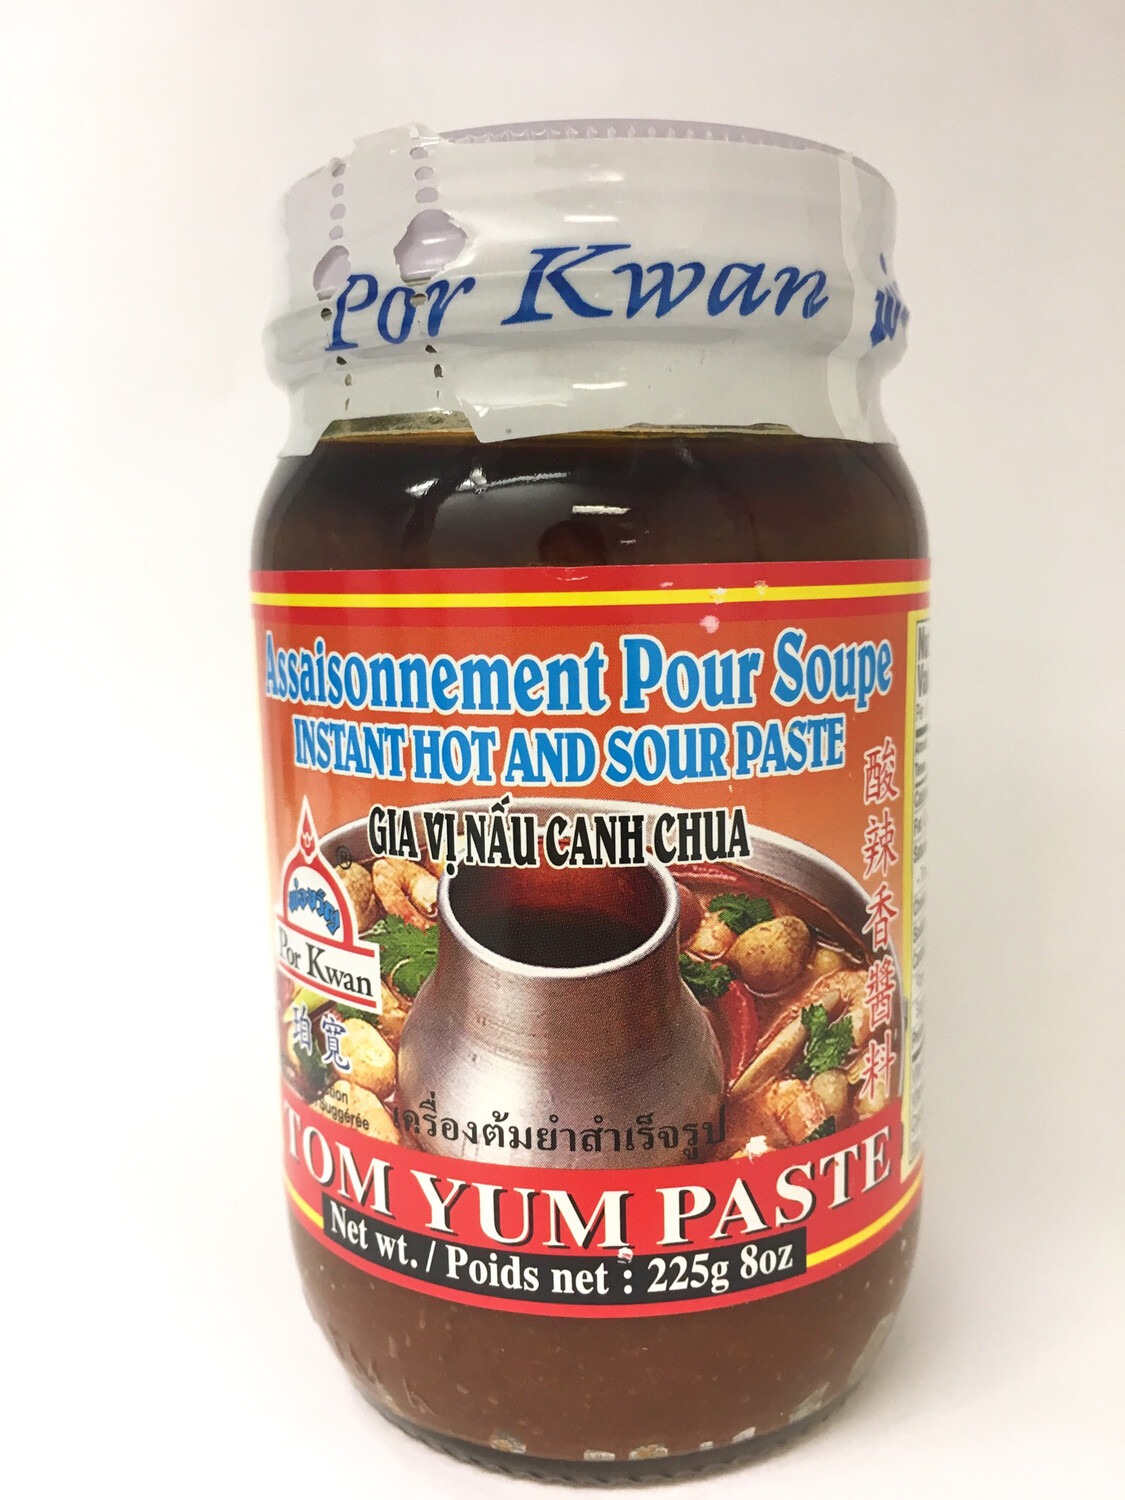 PORKWAN TOM YUM PASTE 24X225G